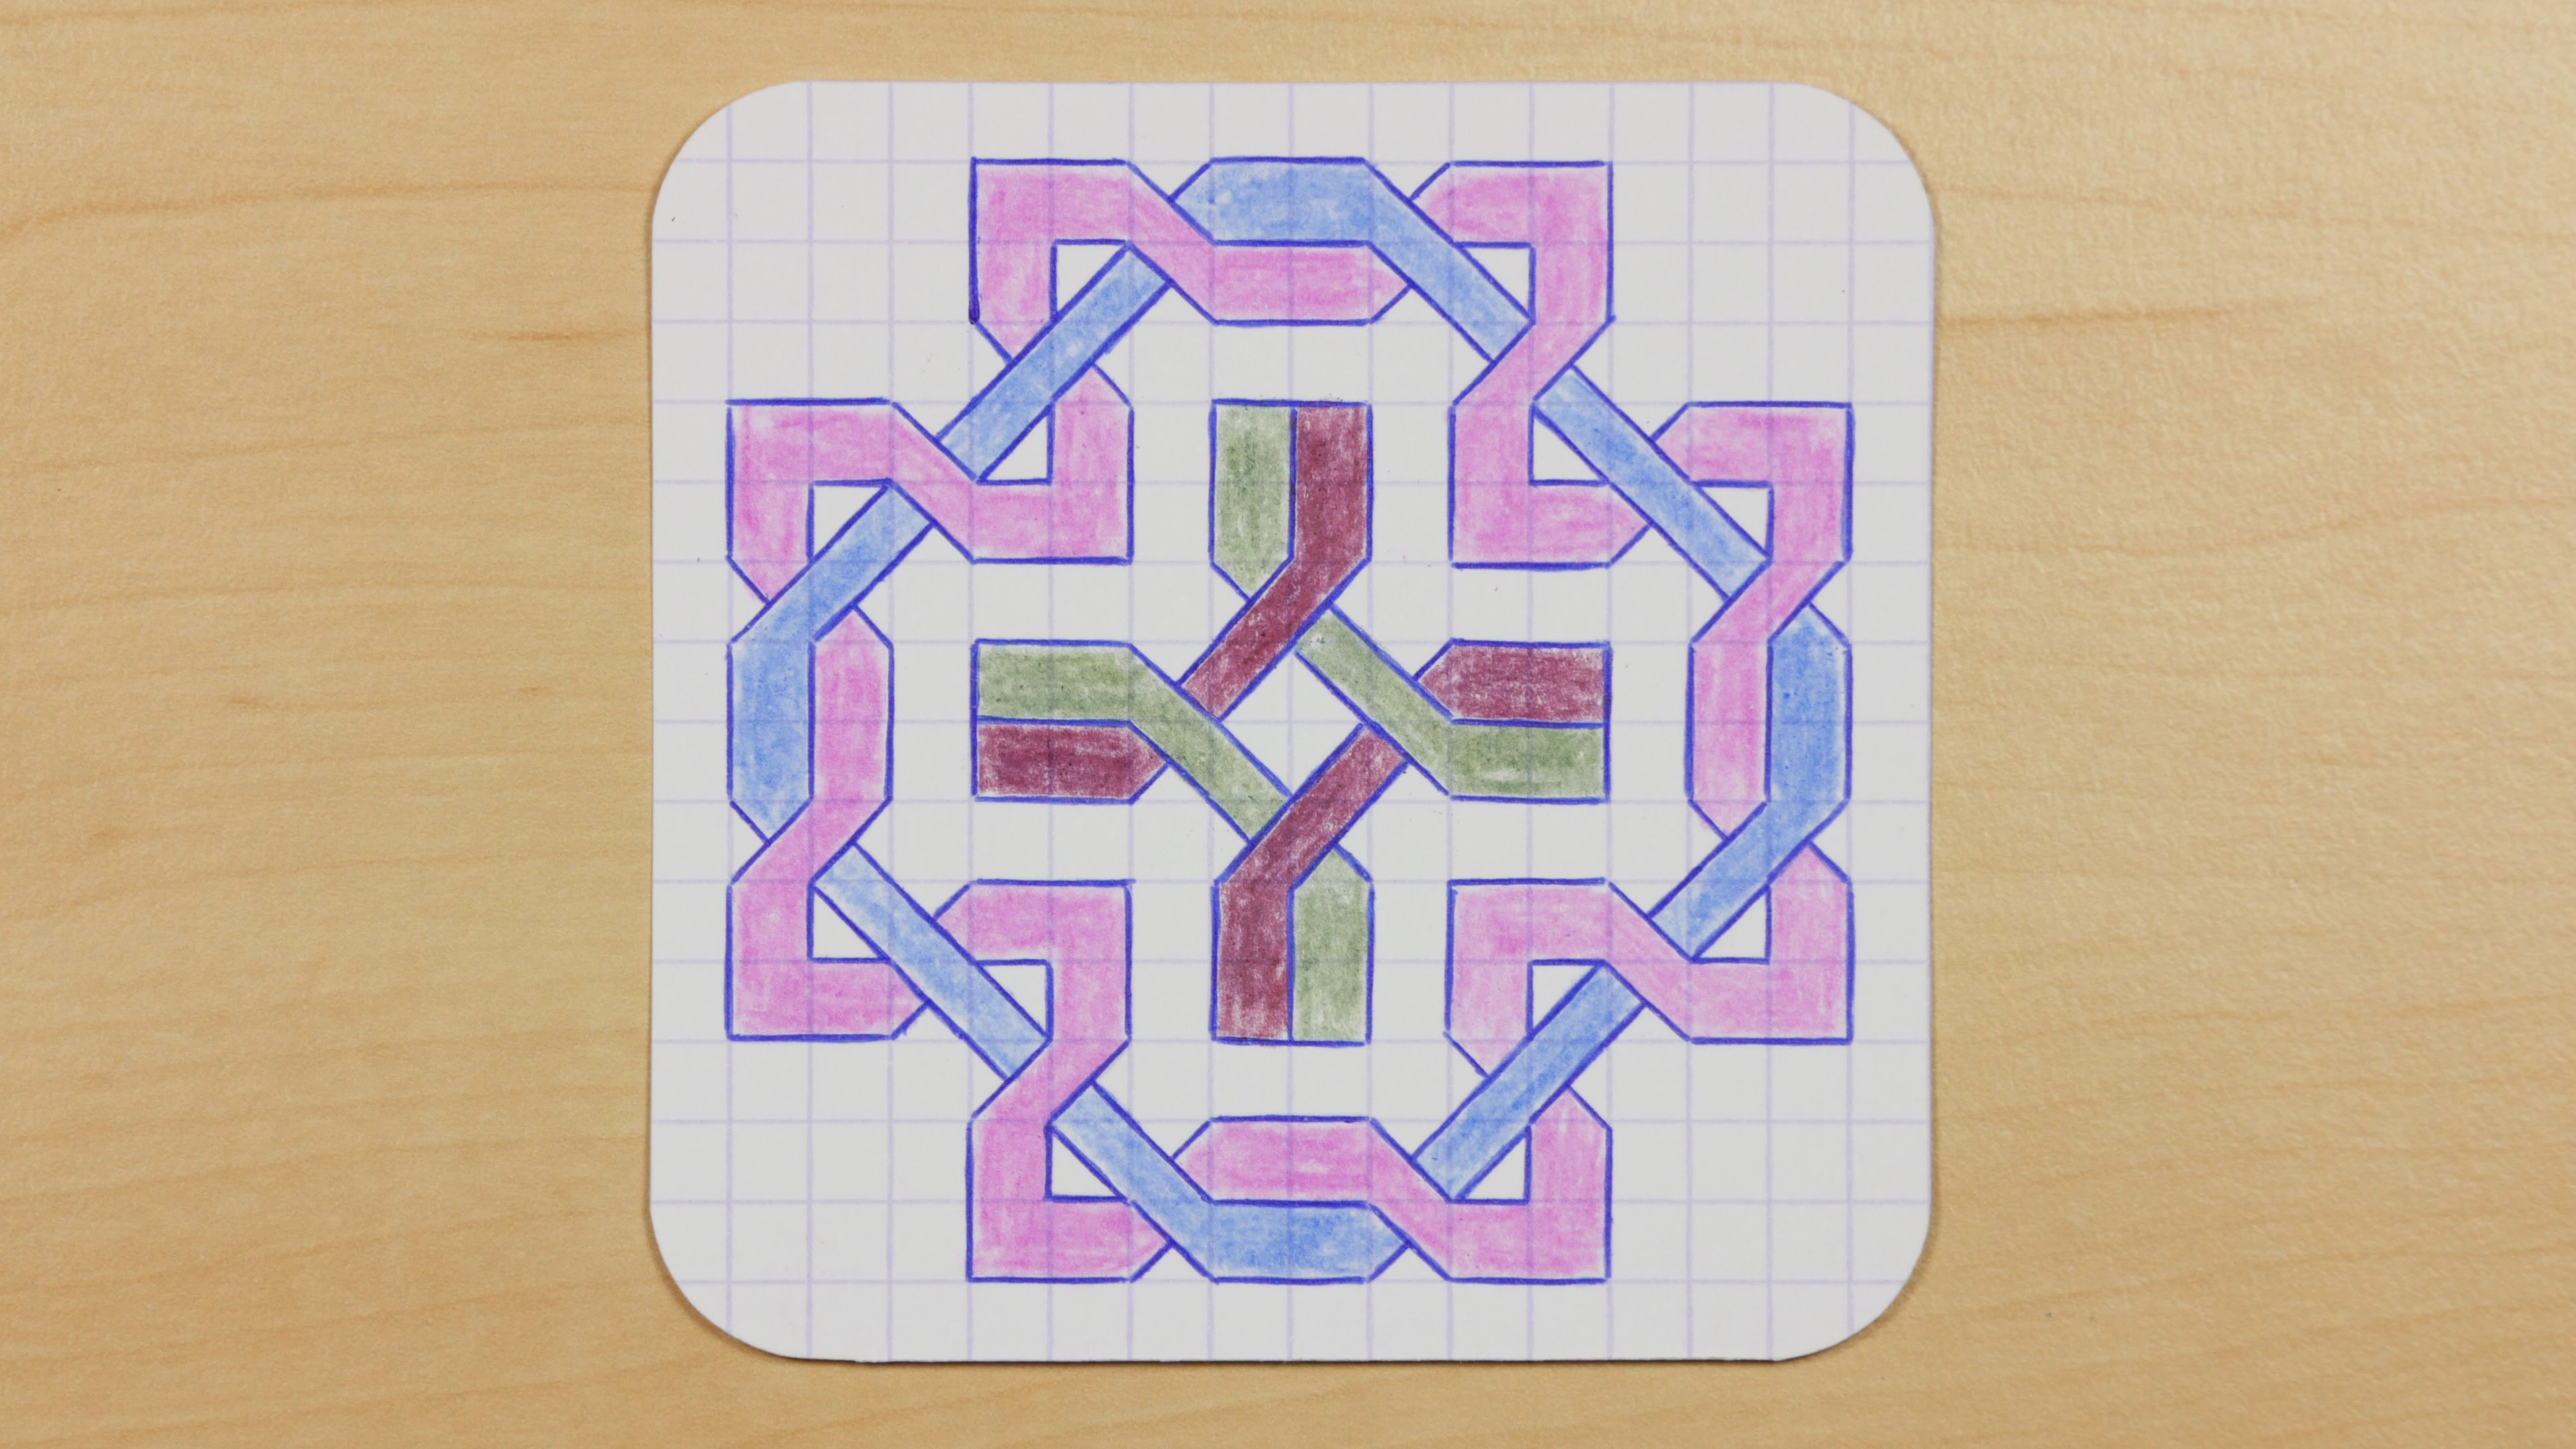 3840x2160 How To Draw Graph Paper Knots